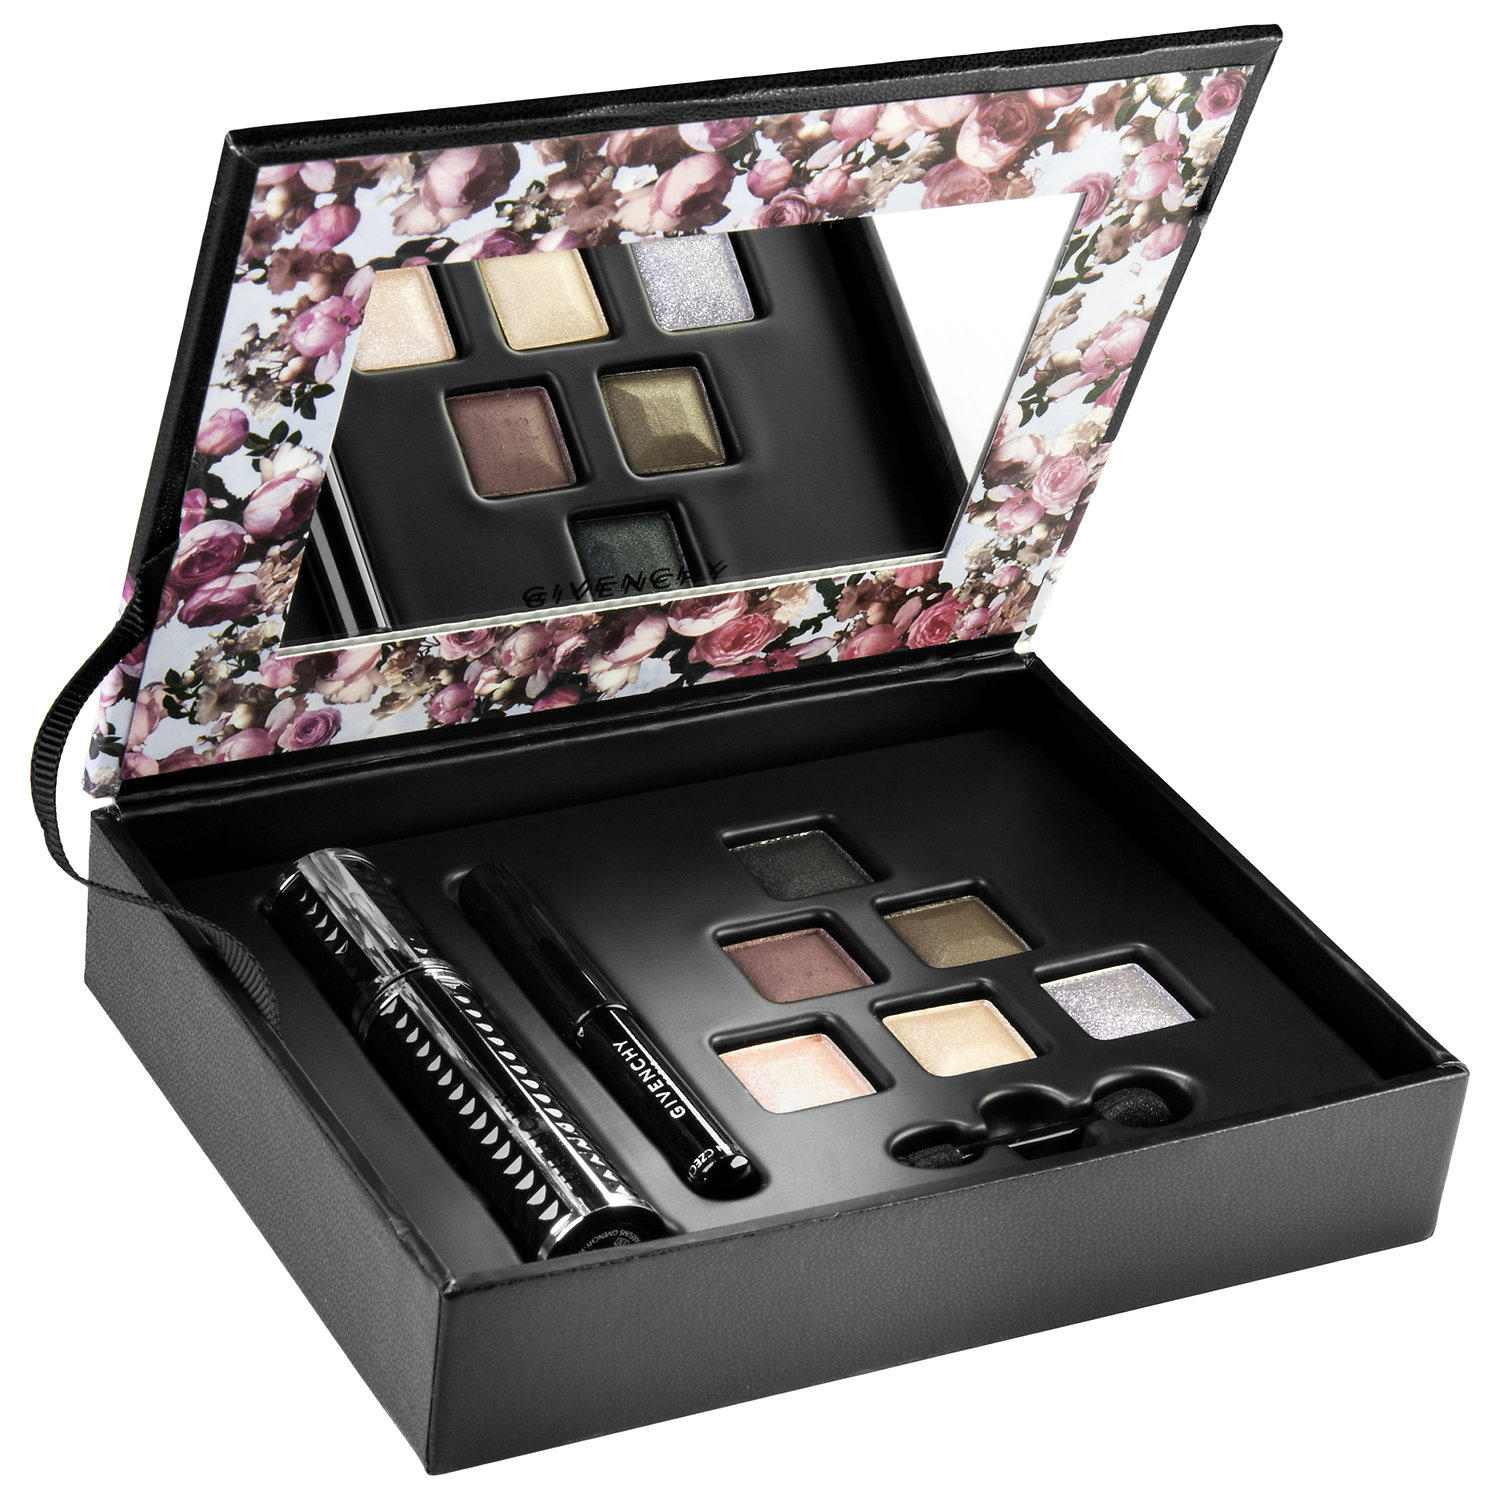 New Release Givenchy launched The Essentials To Enhance Your Eyes Clutch Set